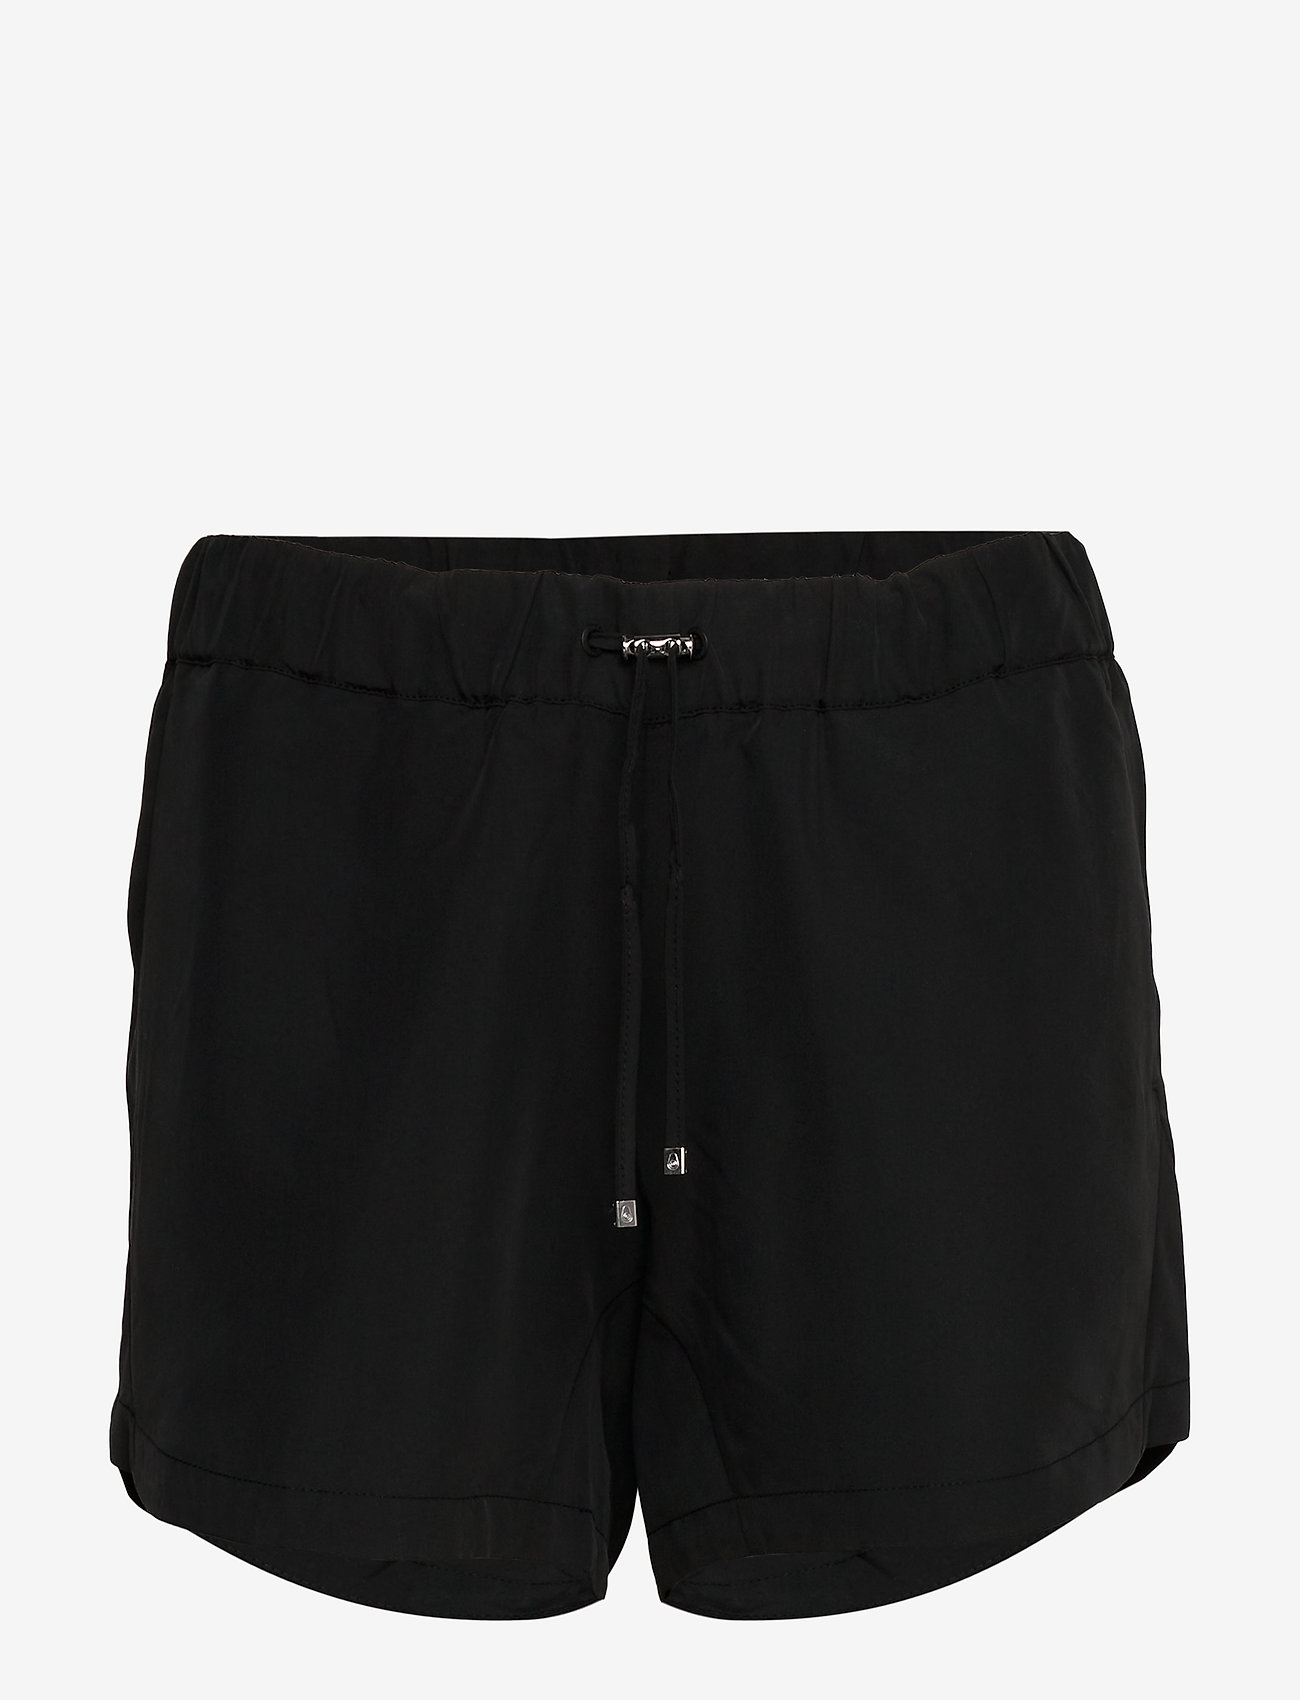 Sail Racing - W RACE WOVEN SHORTS - wandel korte broek - carbon - 0